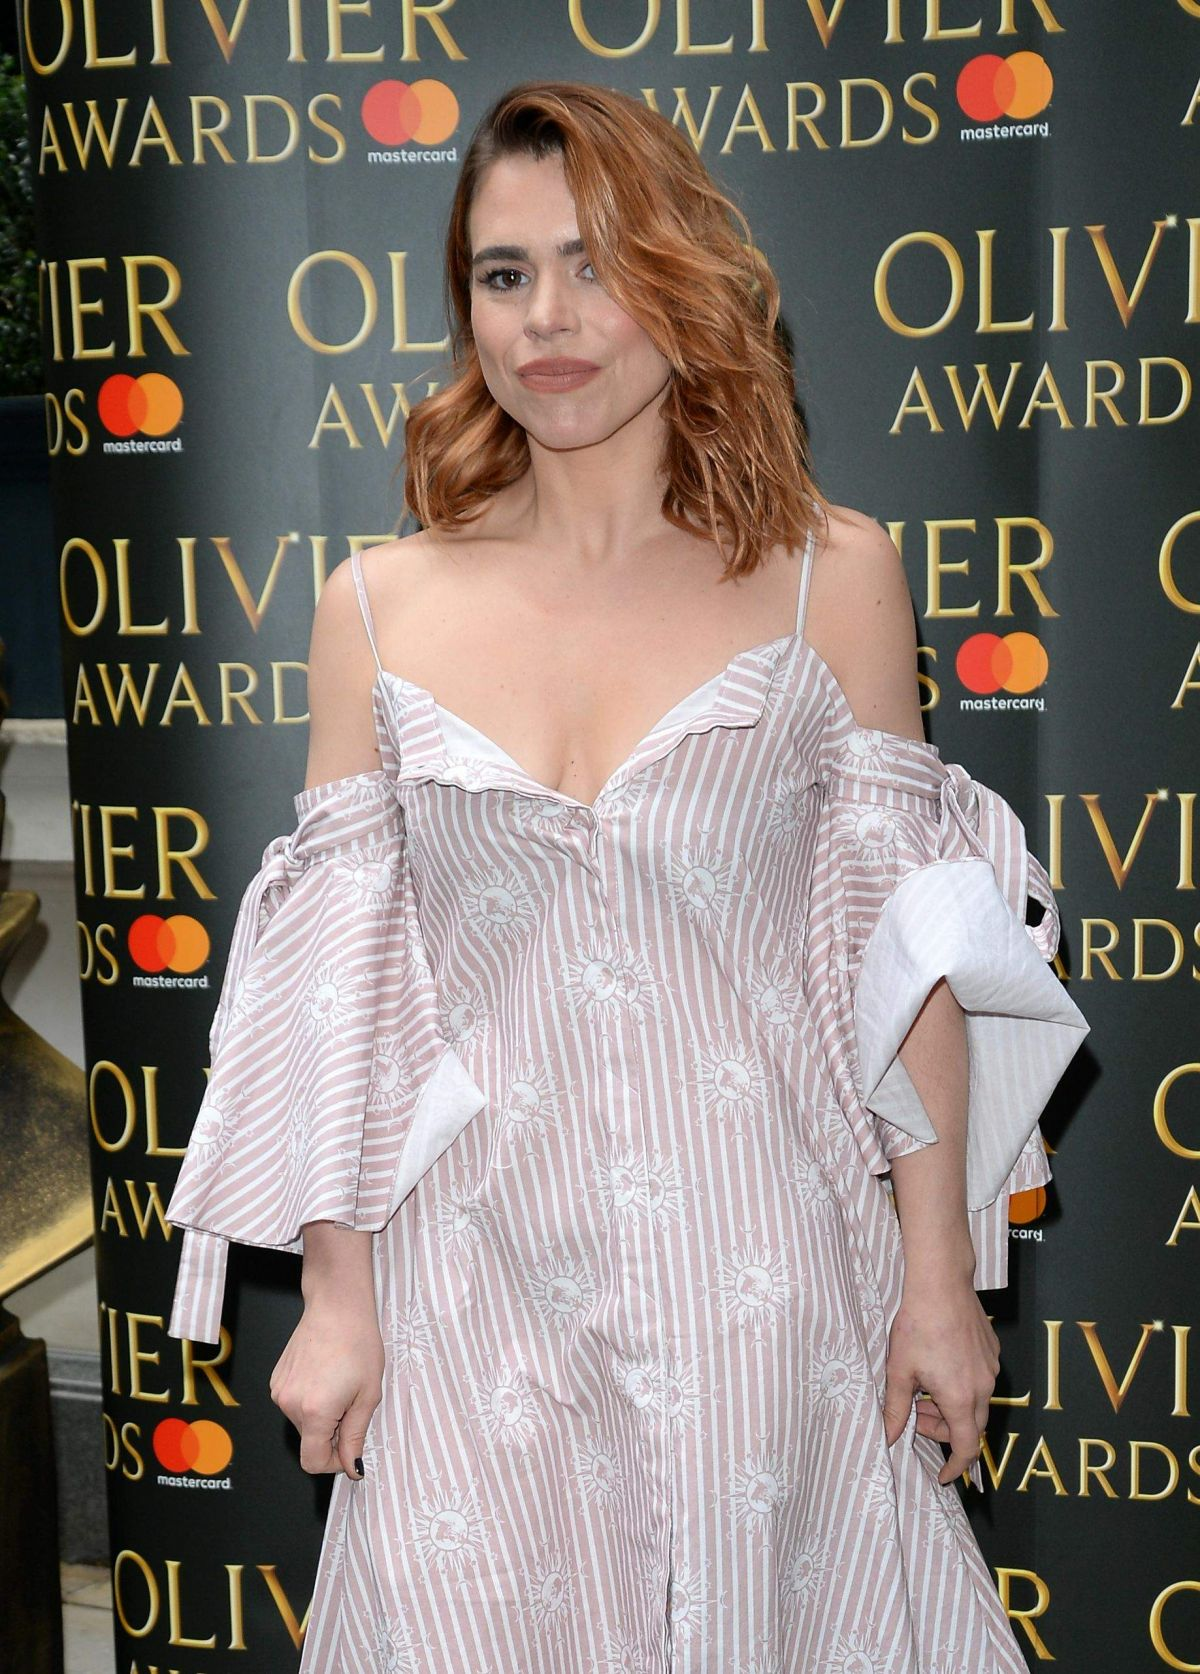 BILLIE PIPER at Olivier Awards Nominees Luncheon in London 03/10/2017